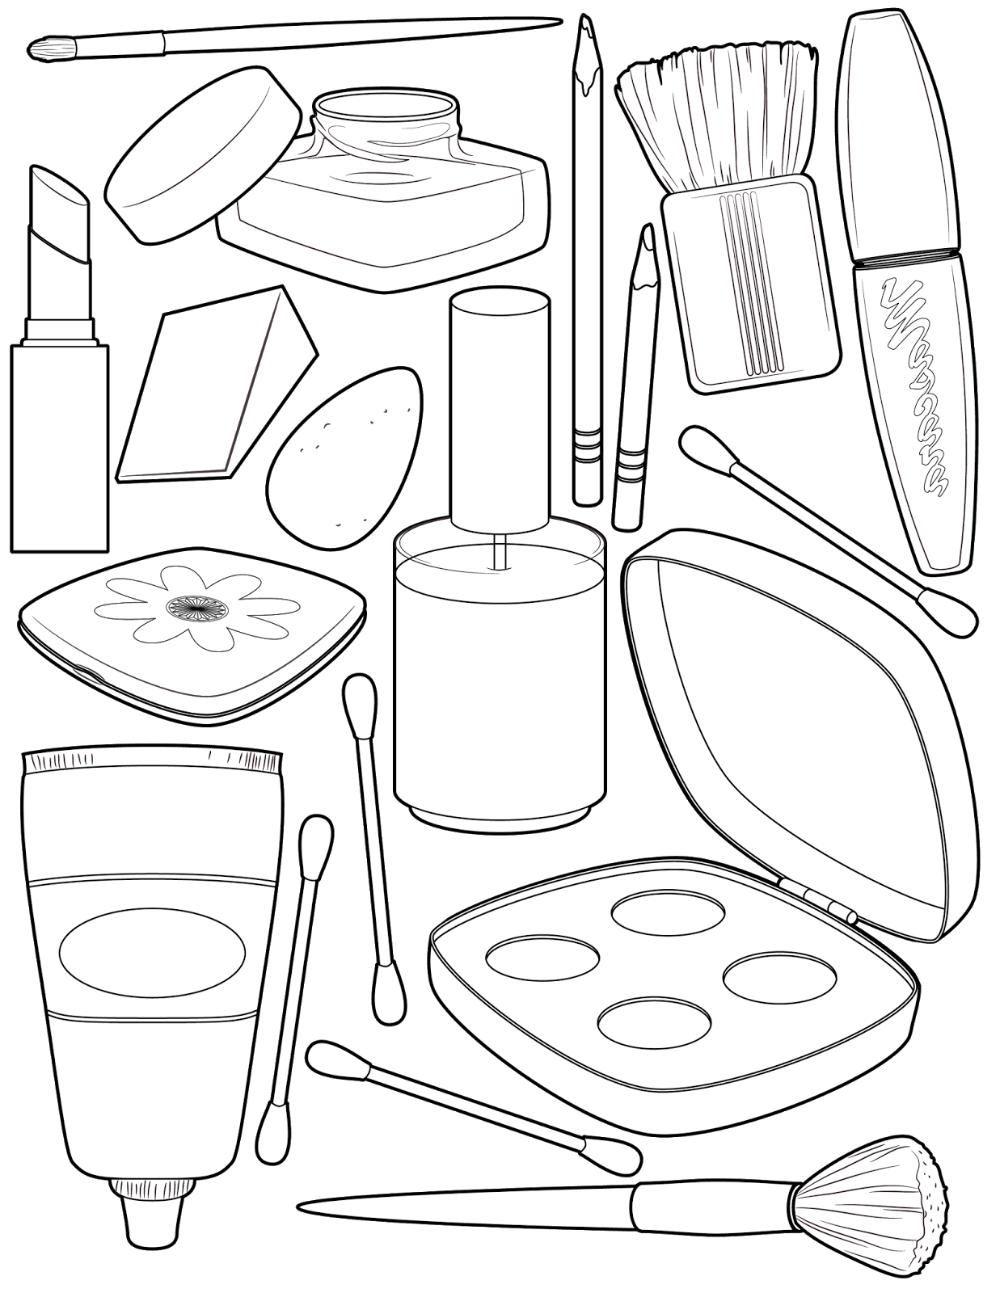 Makeup Coloring Pages For Girls Cute Coloring Pages Free Coloring Pages Coloring Pages